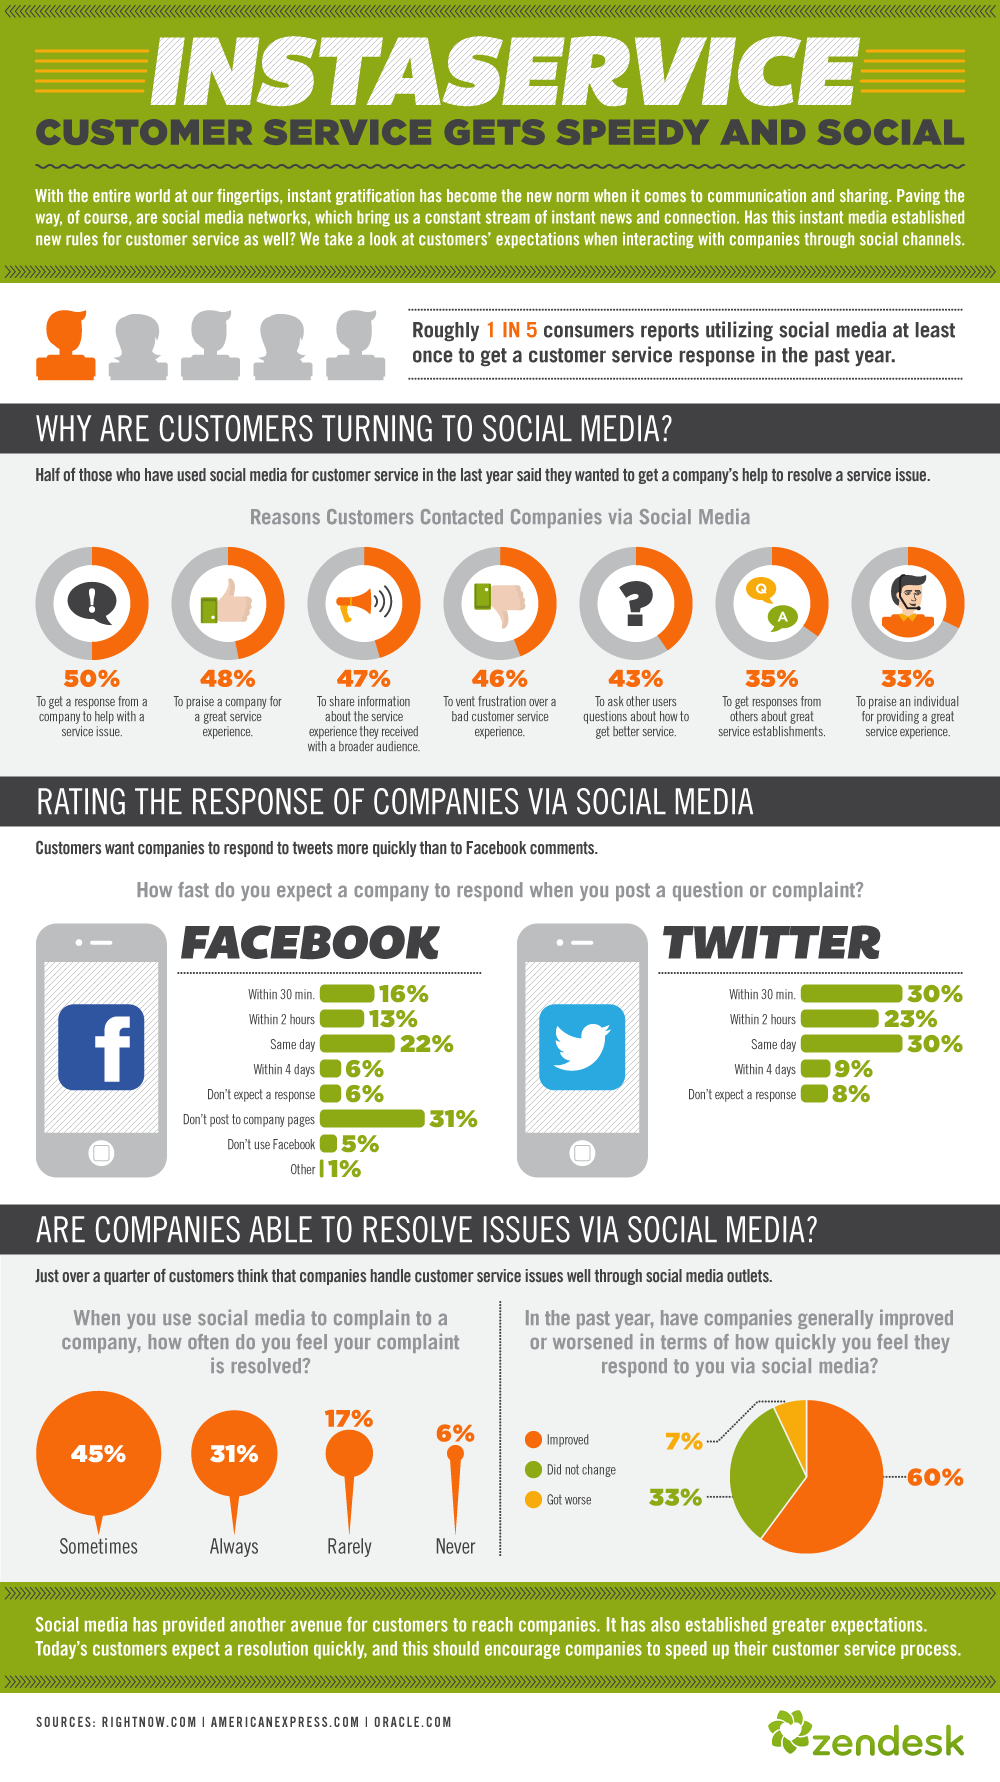 Why are customers turning to social media?